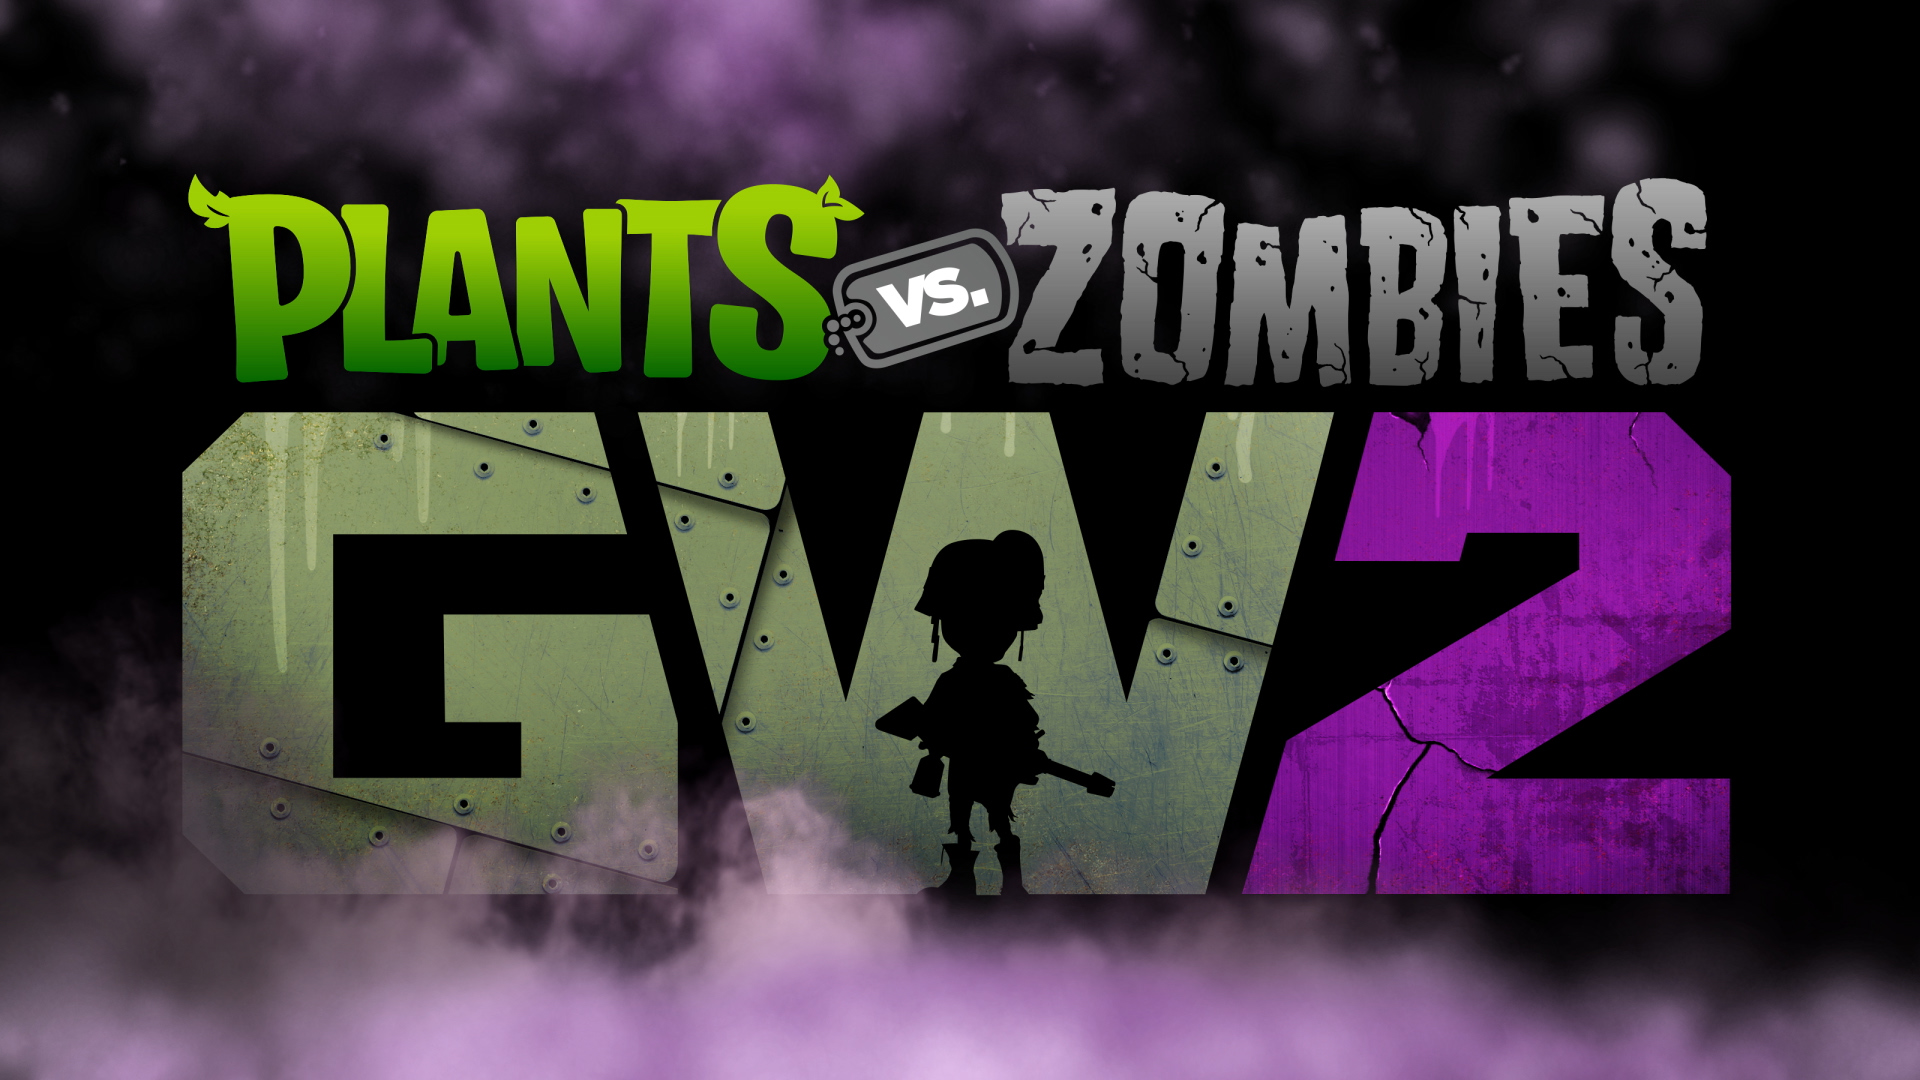 12 plants vs zombies garden warfare 2 for Plante vs zombie garden warfare 2